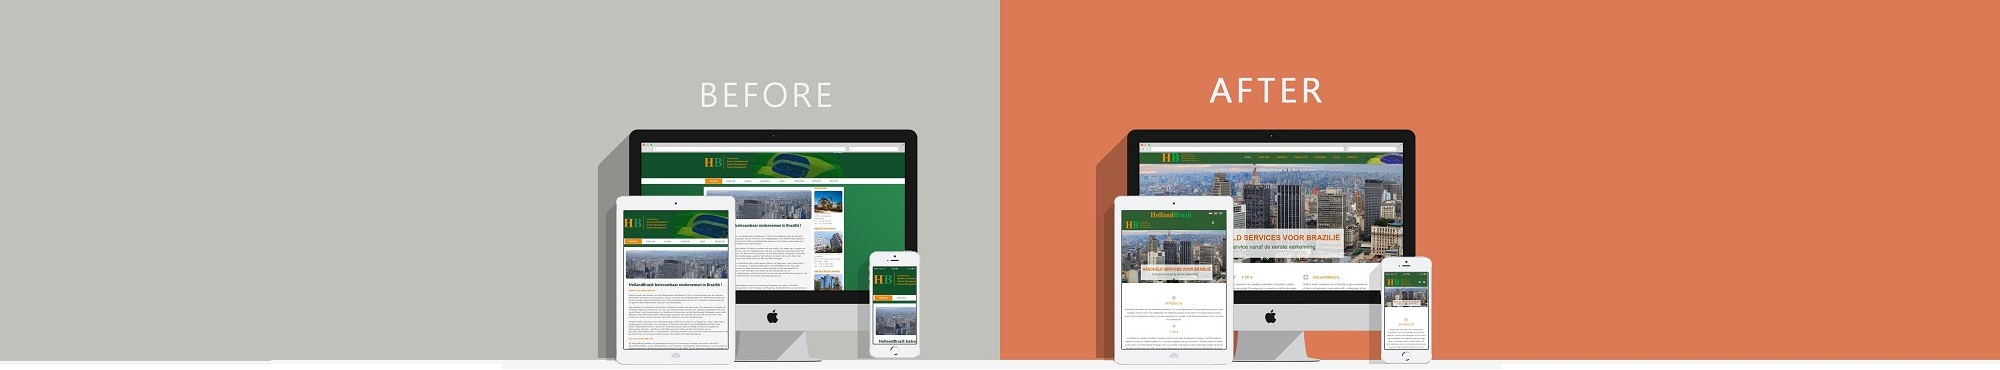 before-after holland brazil website